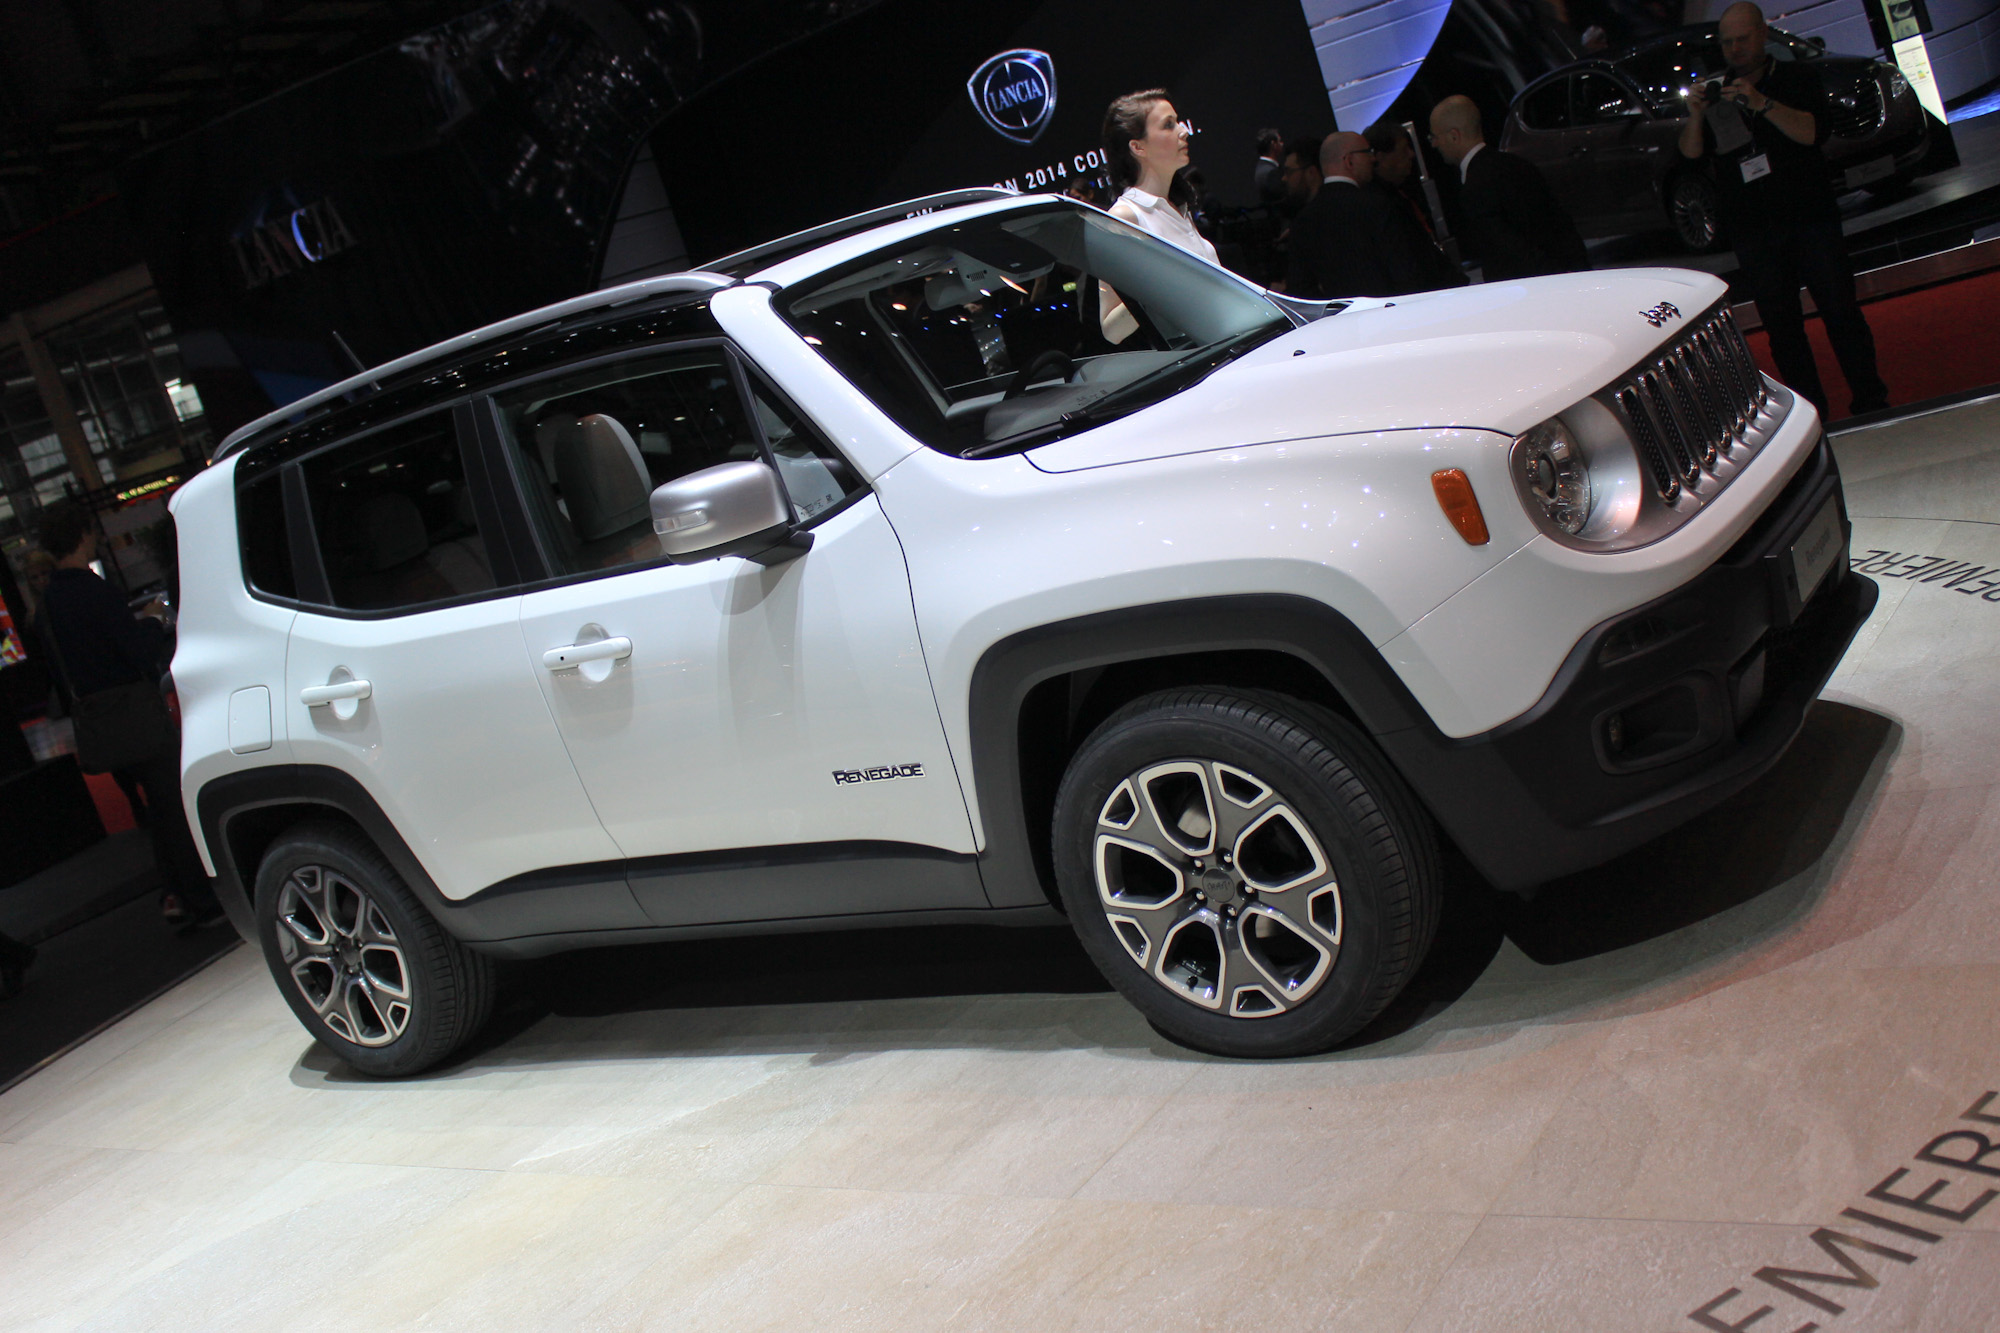 2015 Renegade - Jeep Downsizes For World Domination ...